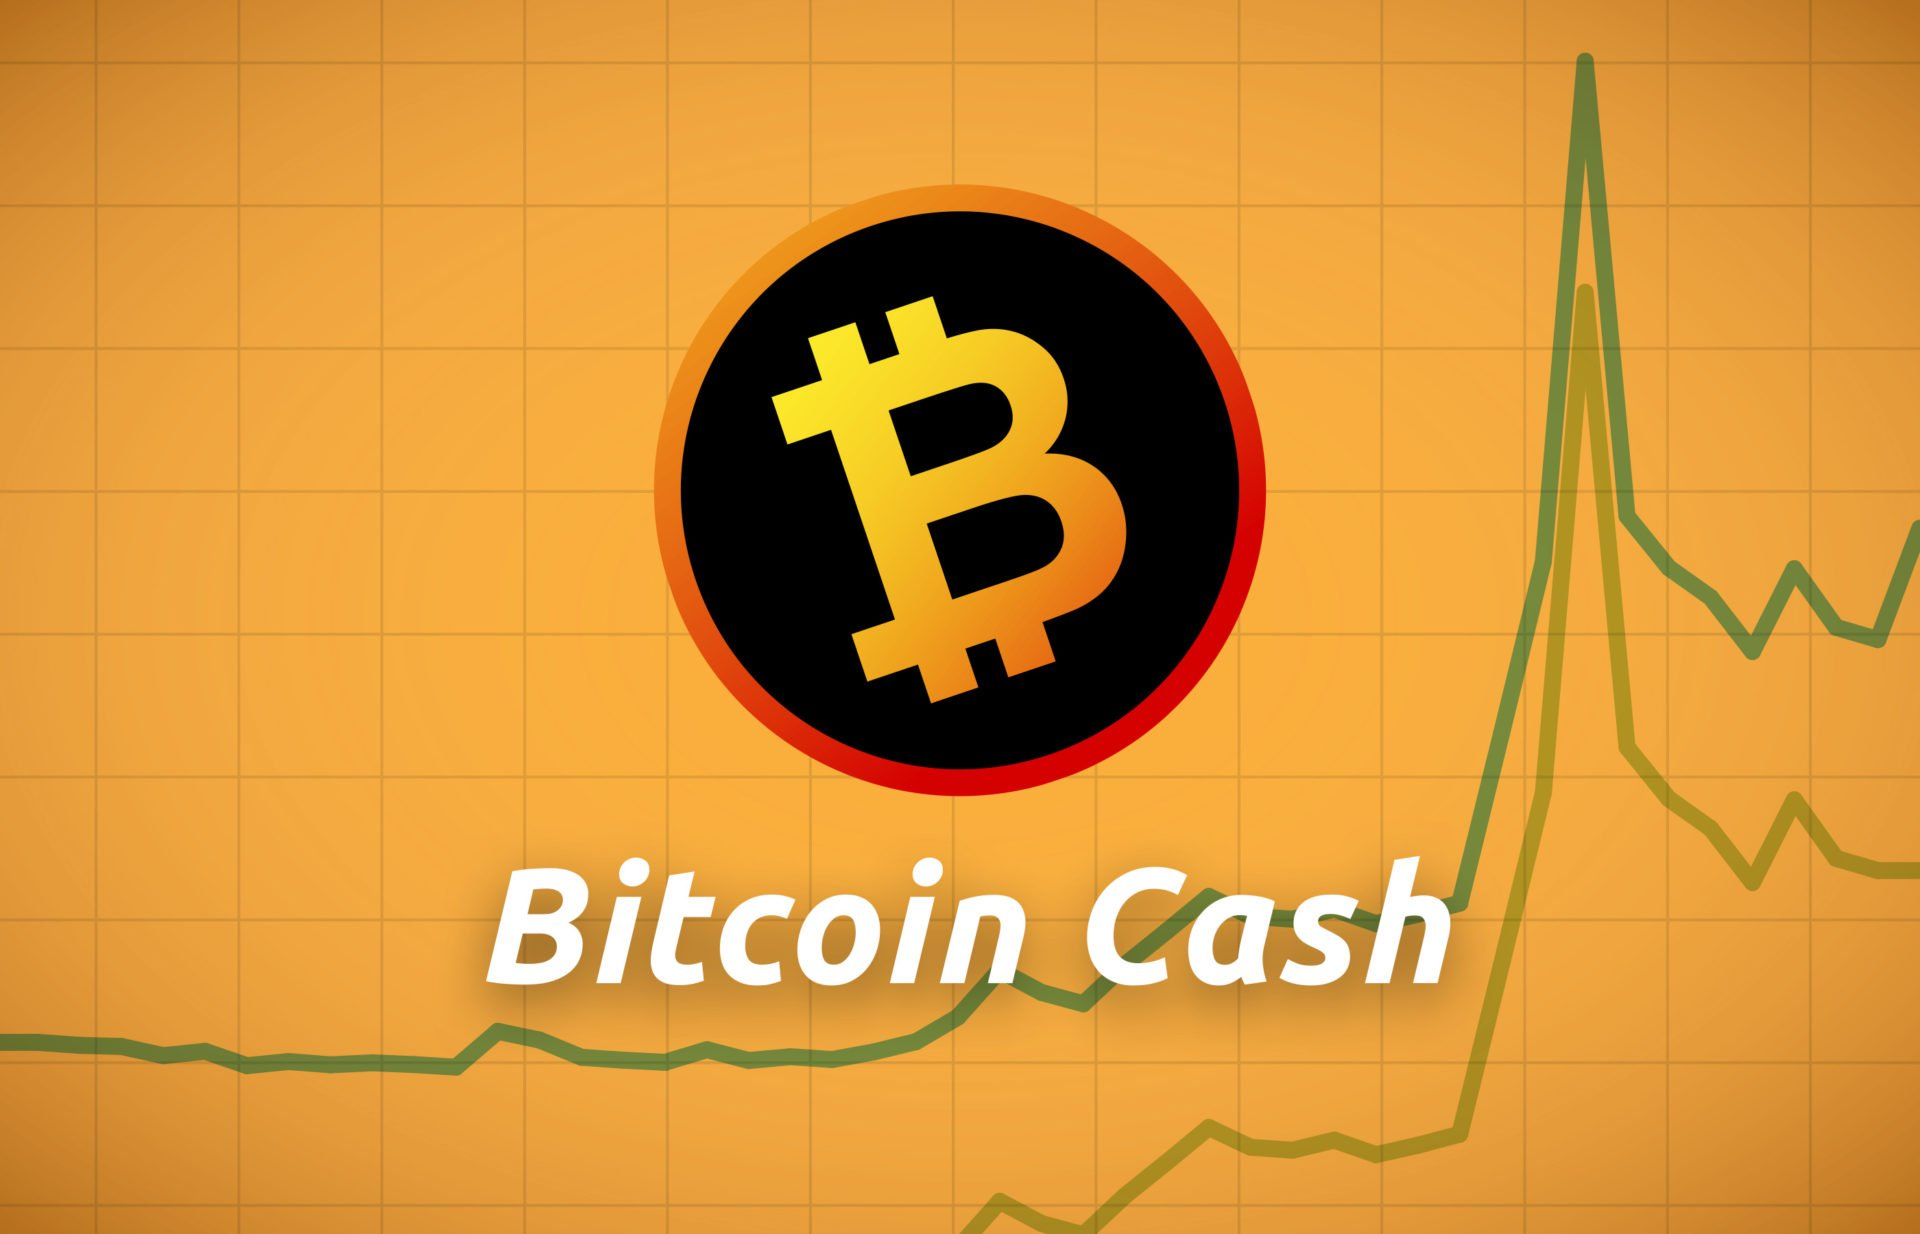 Bitcoin Cash (BCH) Double Digit Gain While Accepted as Payments by Germany Leading Delivery Firms 13